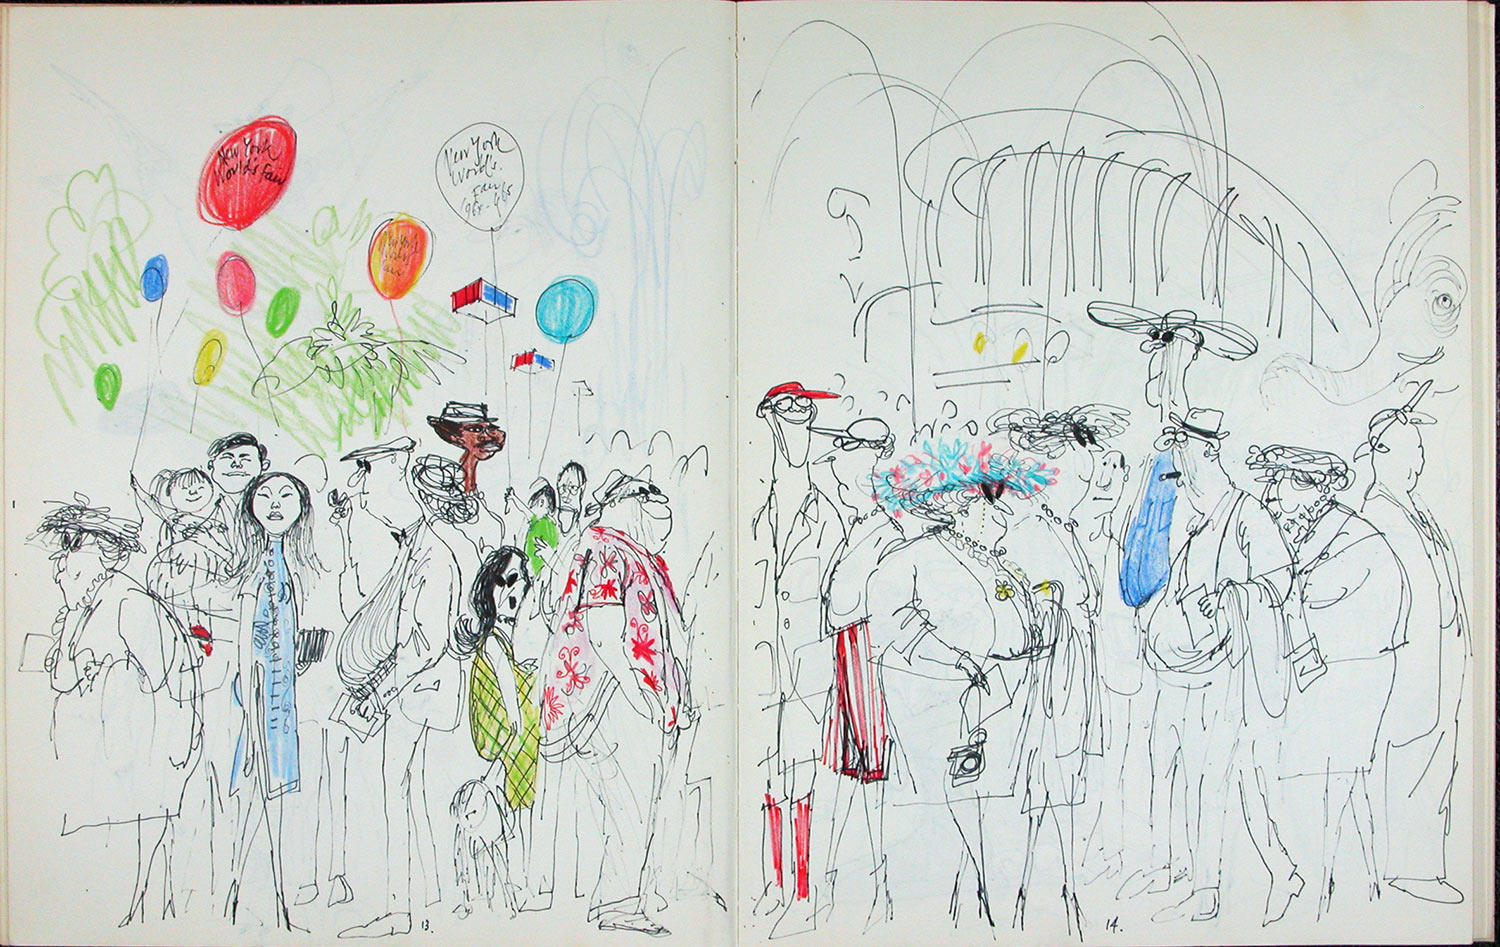 Sketchbook observation by Ronald Searle.